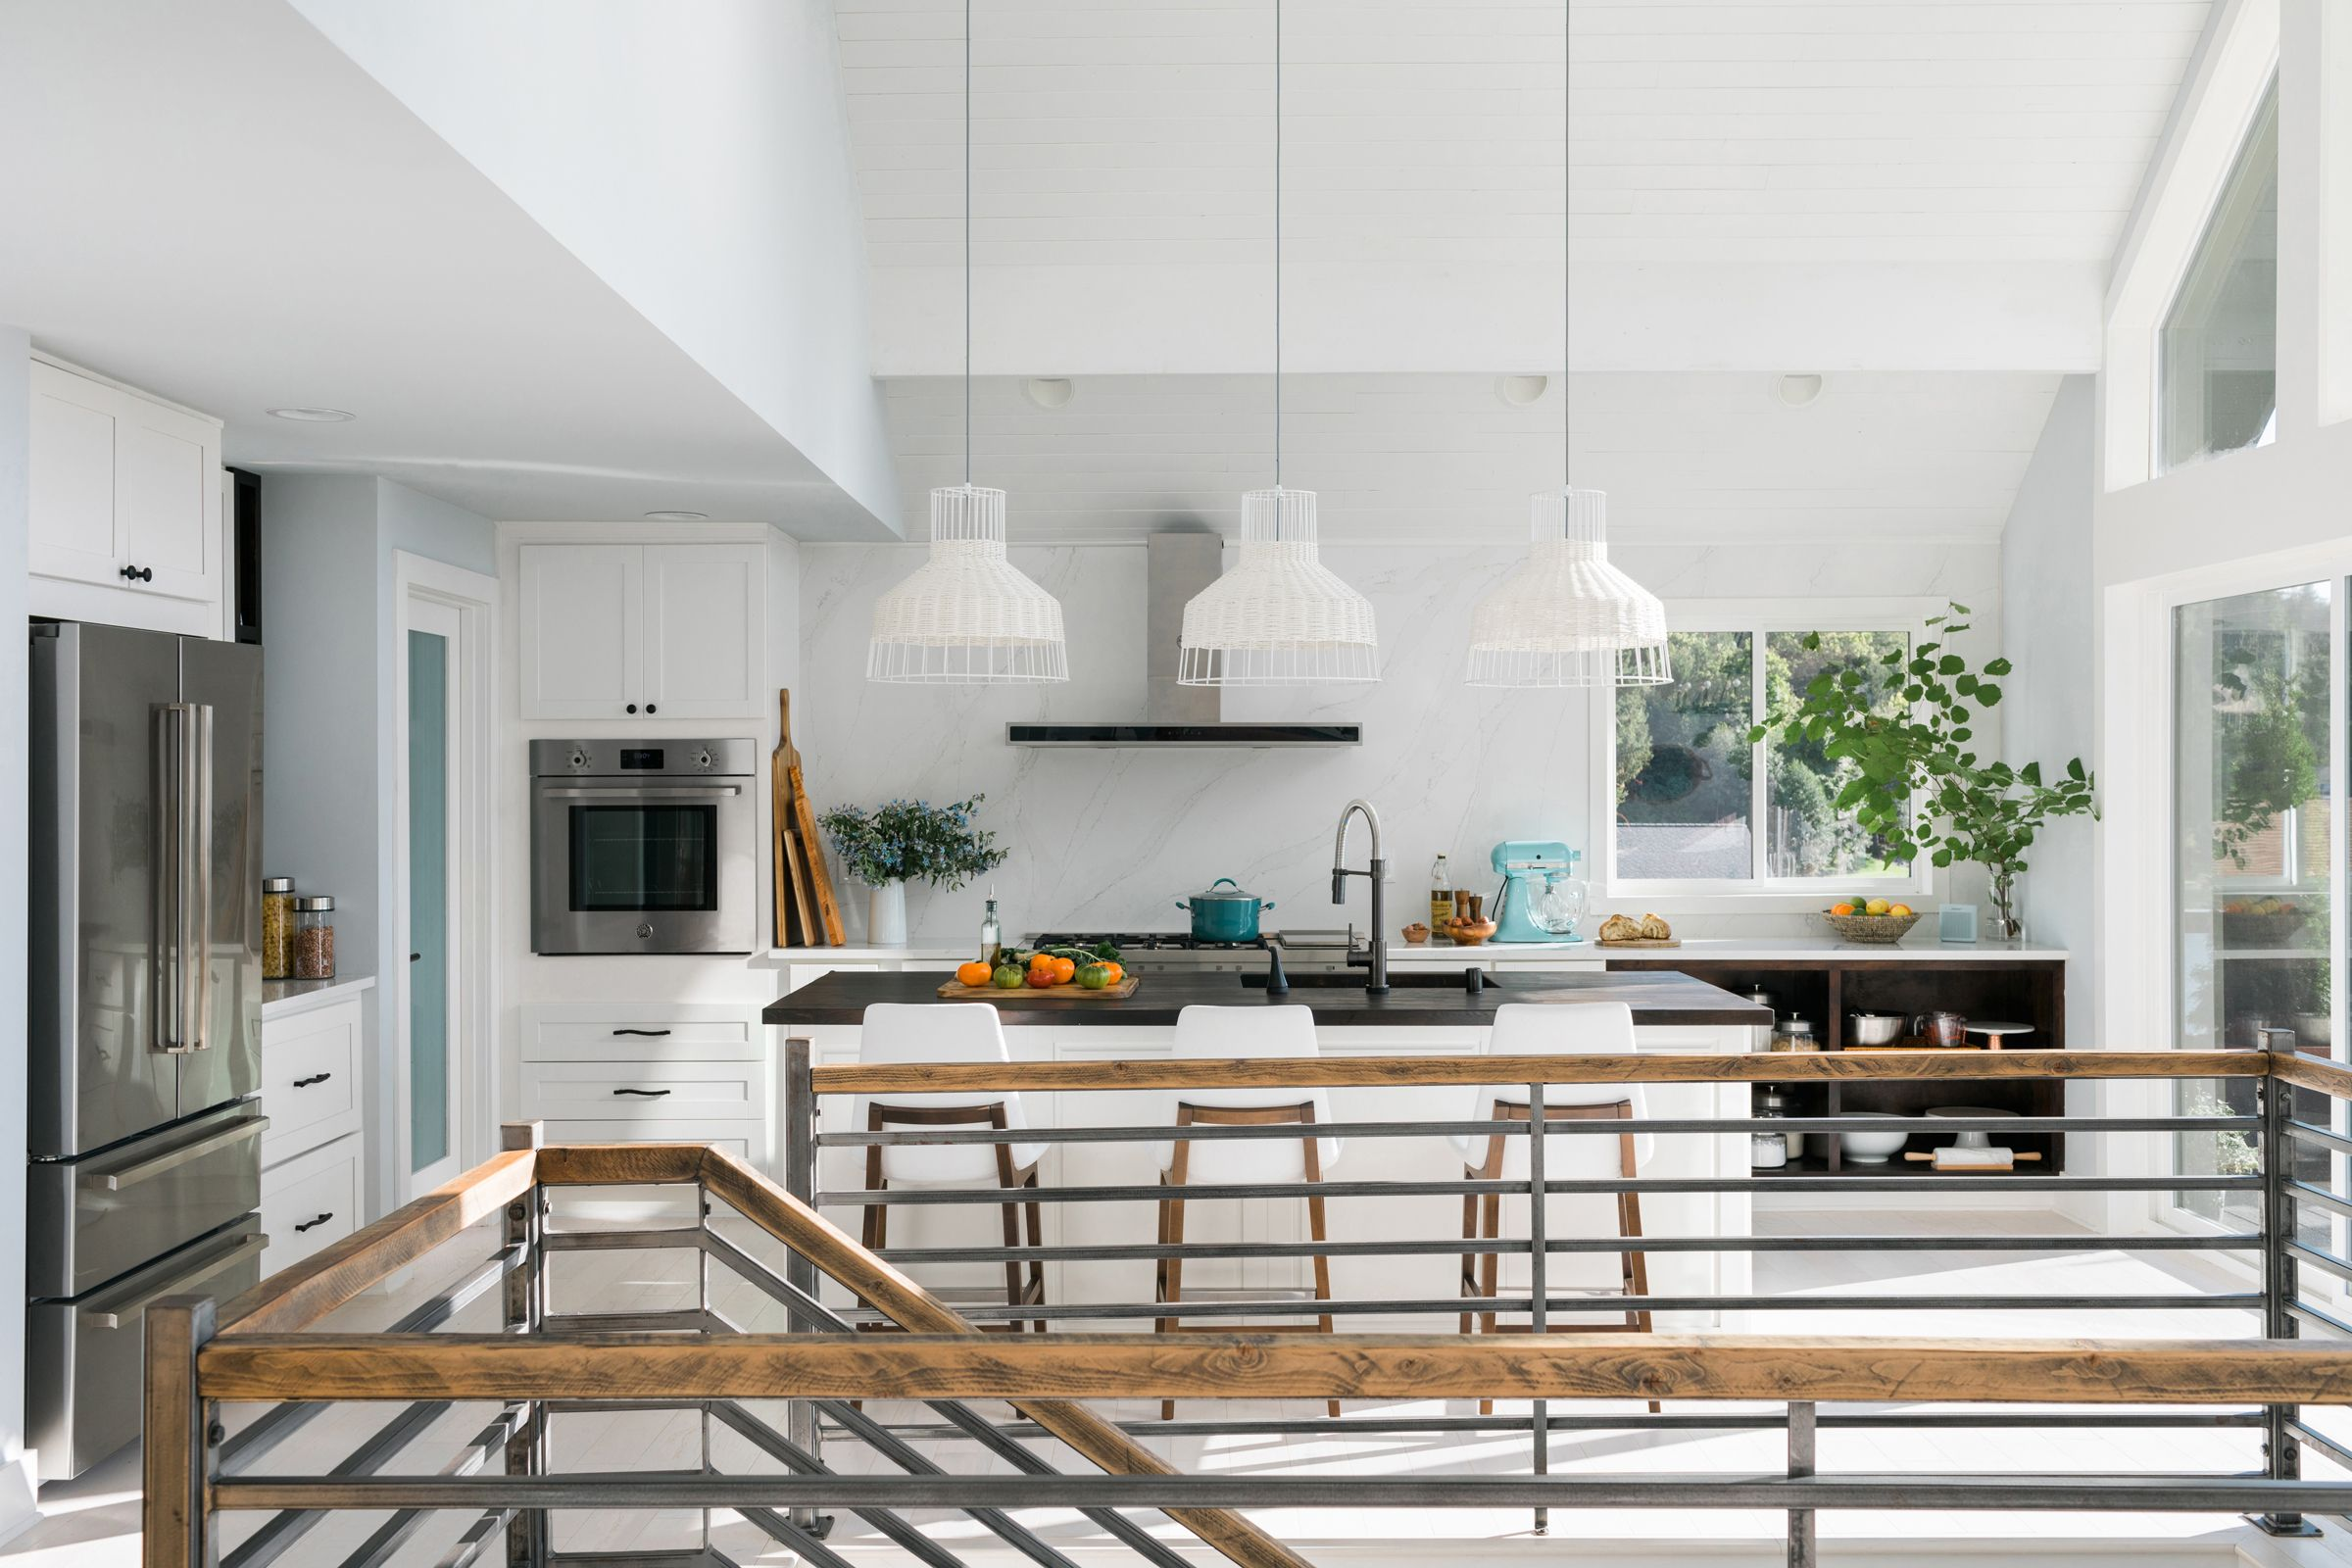 hgtv dream home 2018 kitchen 1518044013 - HGTV Dream Home 2020 Sweepstakes Rules